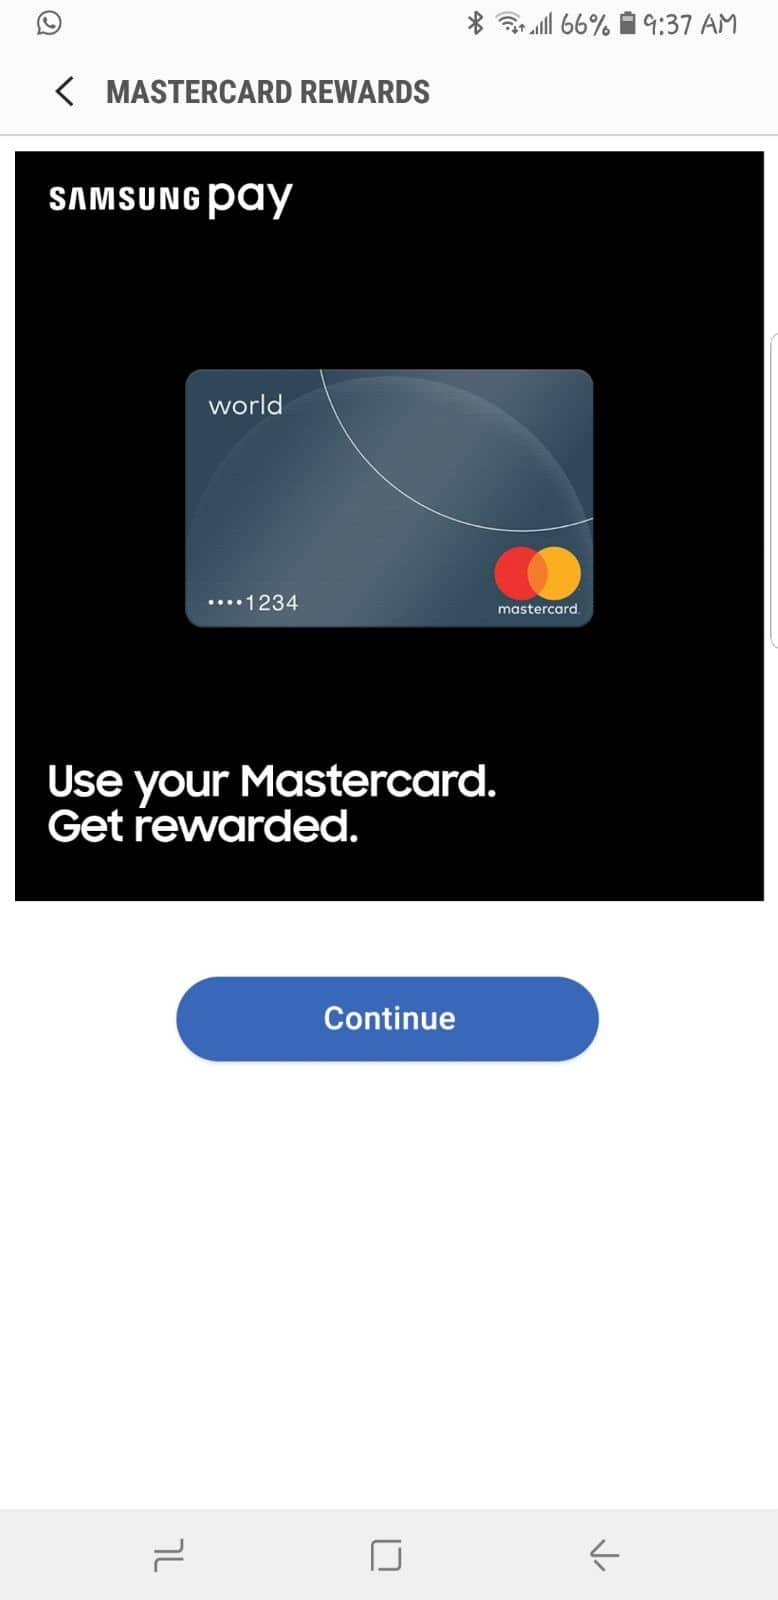 Samsung Pay : Earn 10$ Amazon Gift card with 3  master card purchases for Galaxy S9/S9+ users